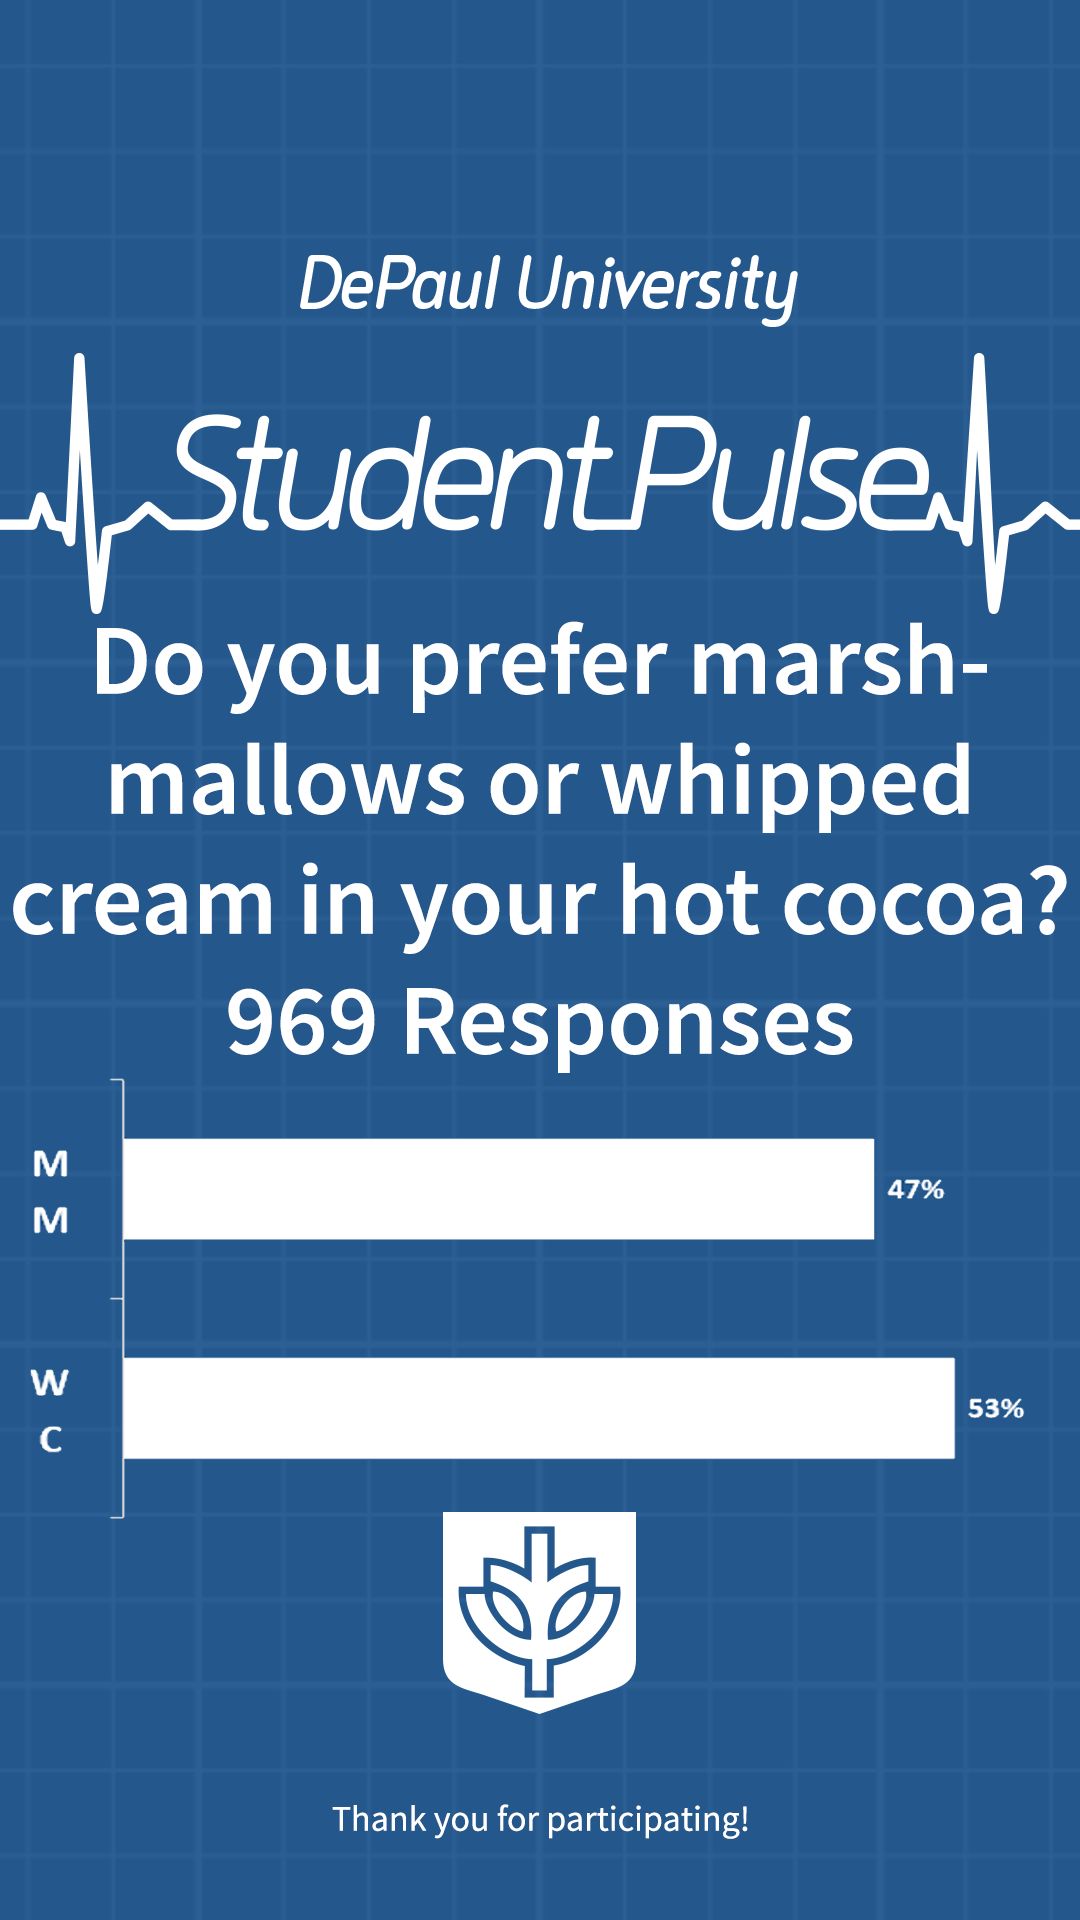 Do you prefer marshmallows or whipped cream in your hot cocoa?